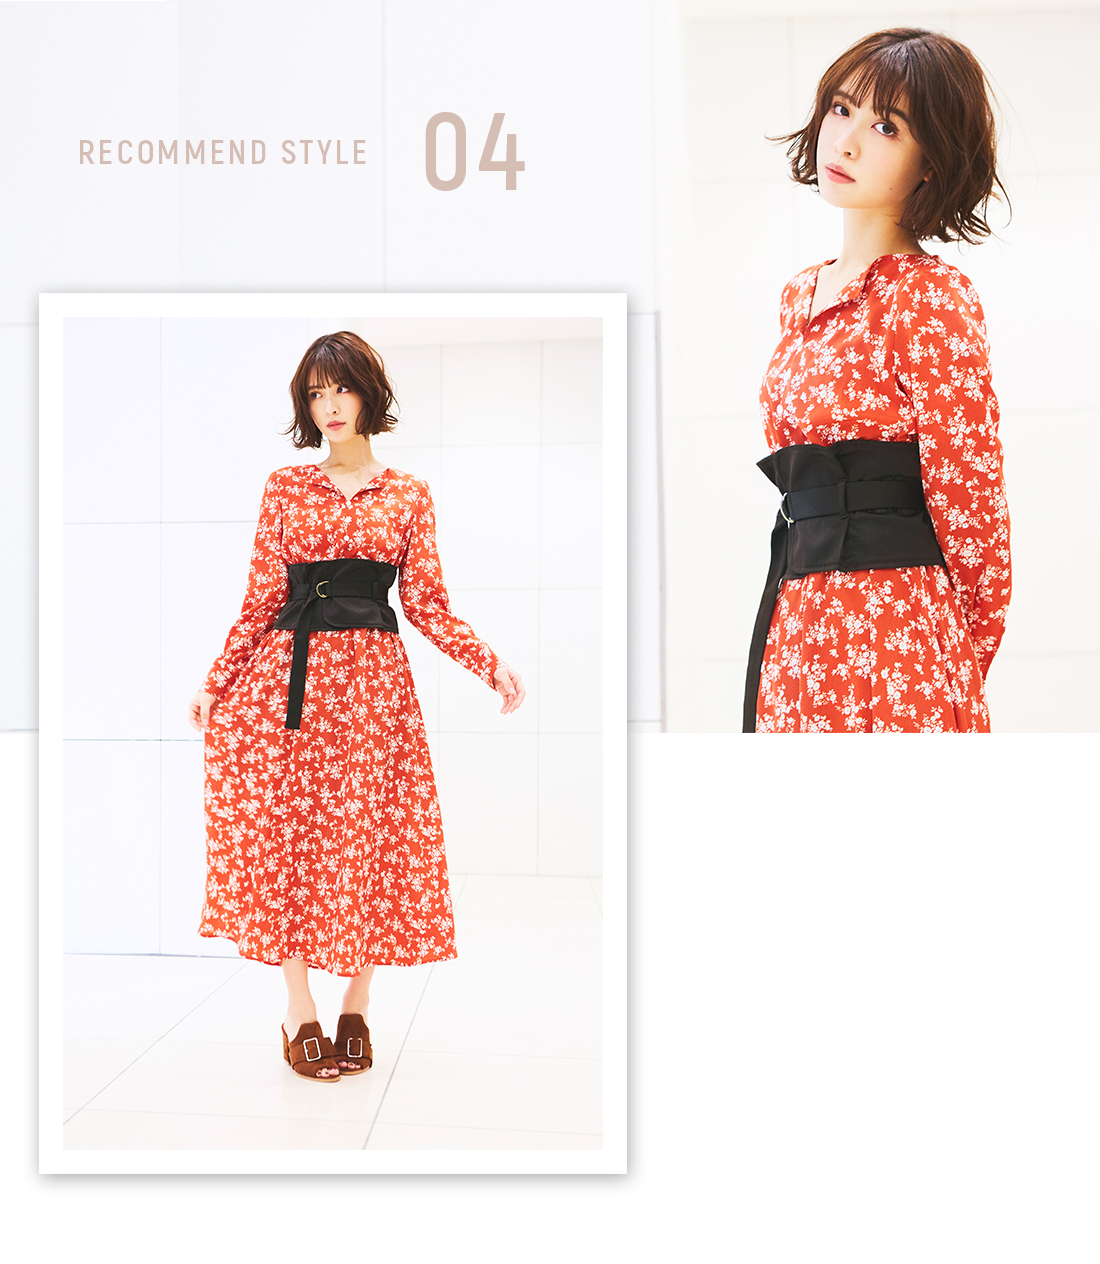 recommend_style_02